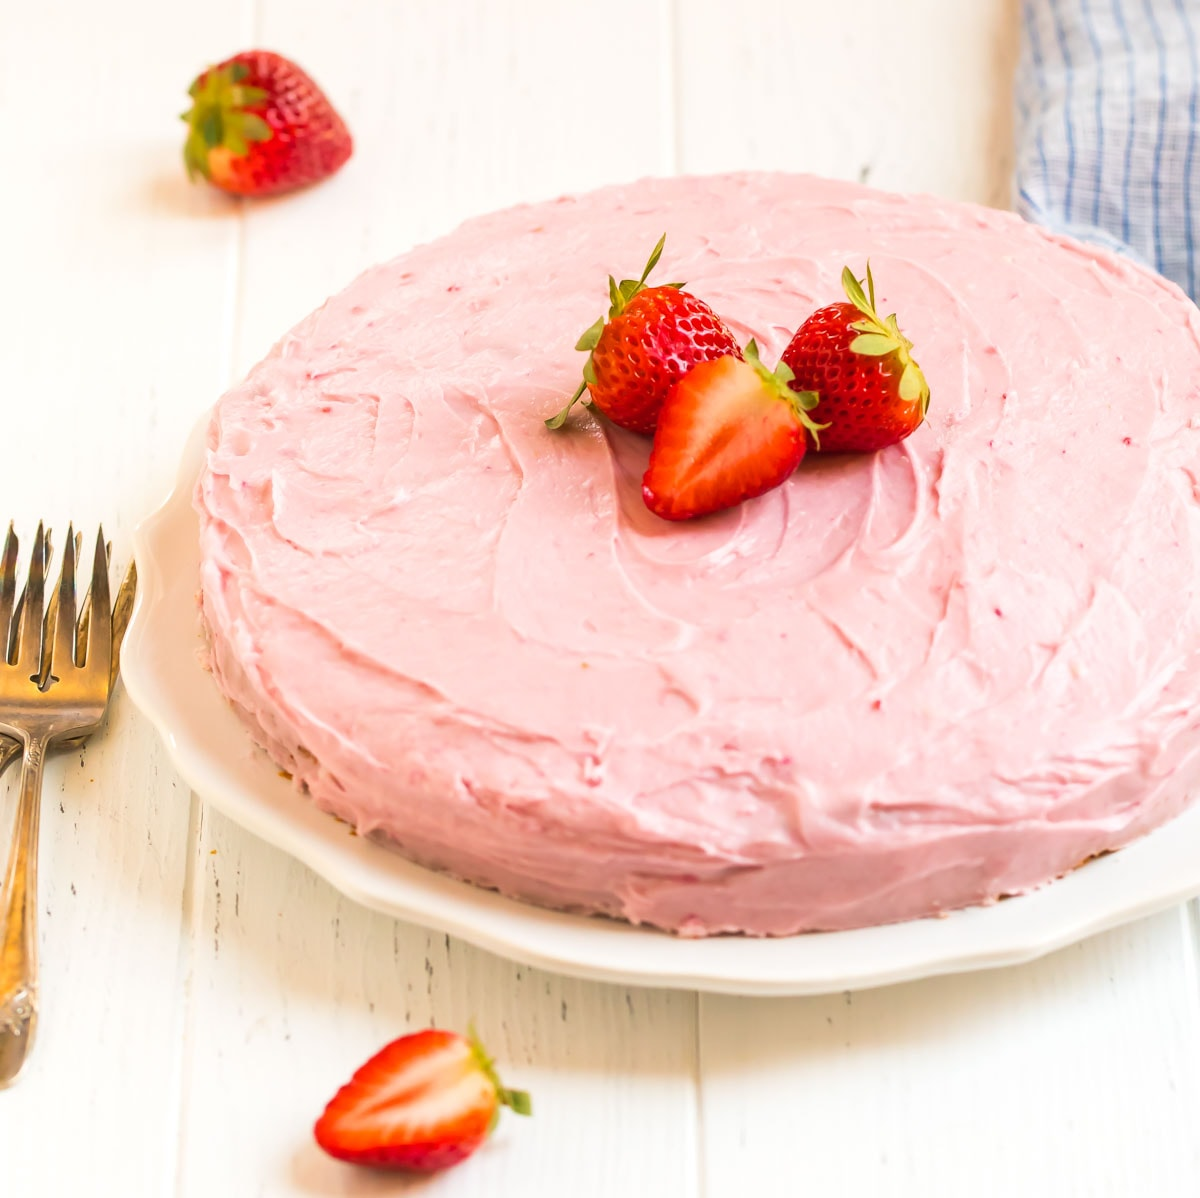 A beautiful and simple cake served on a plate with fresh fruit